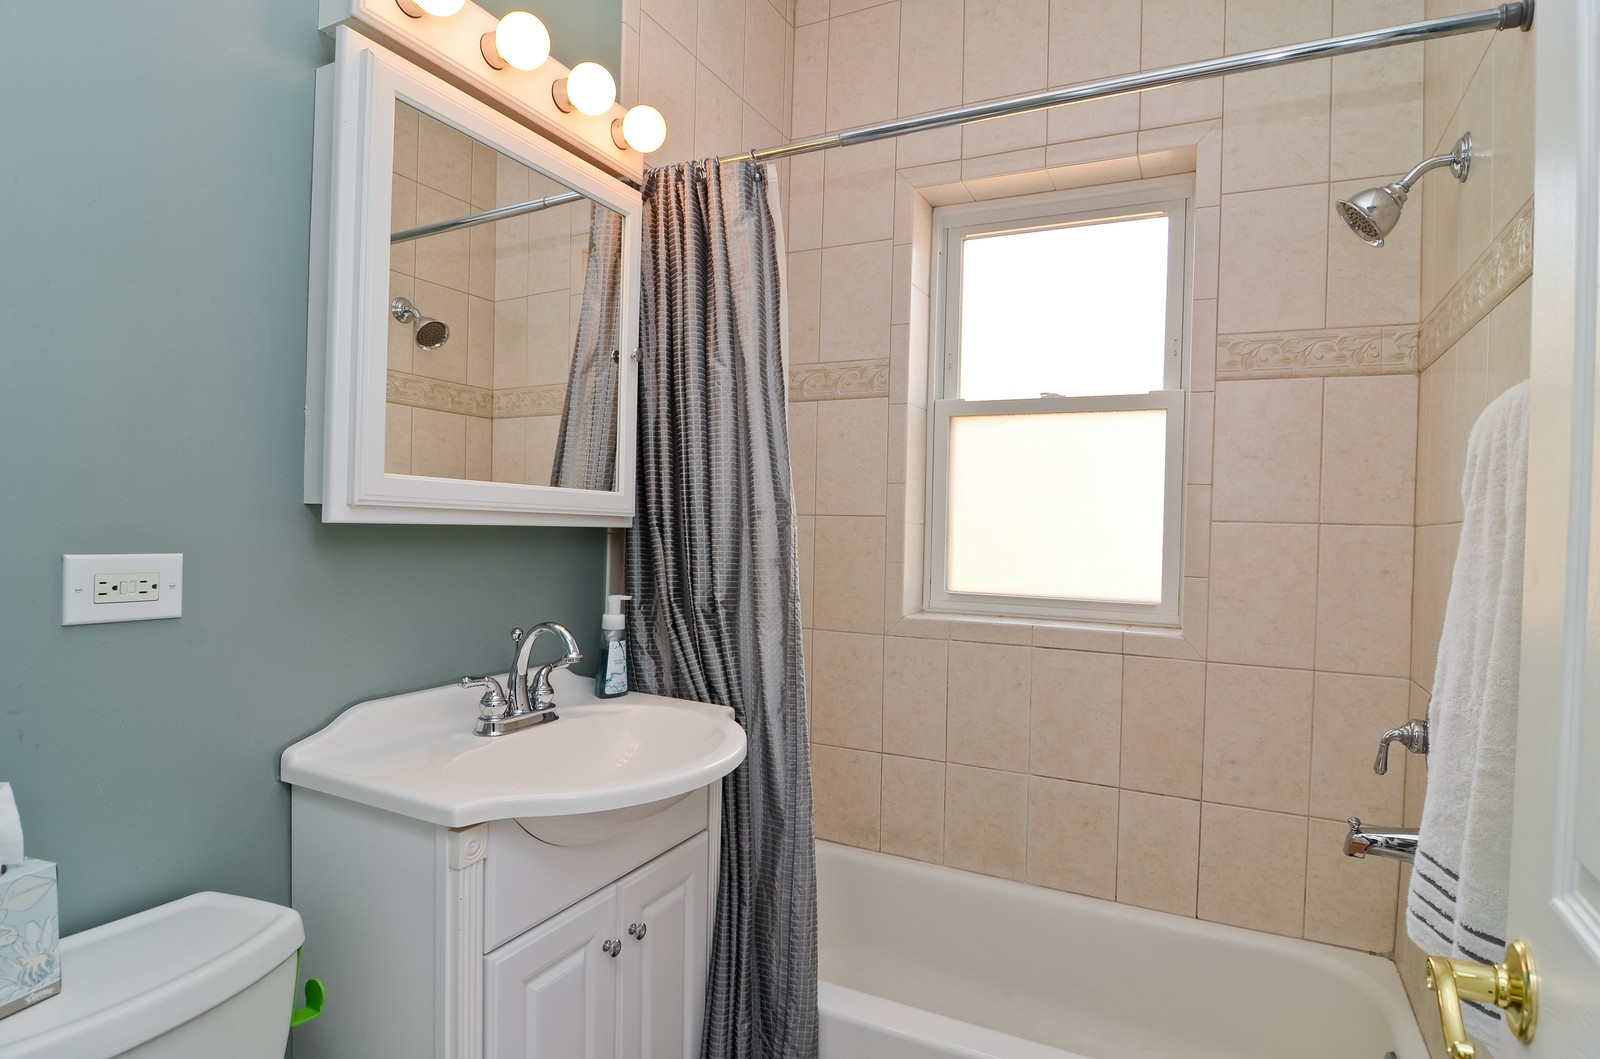 Real Estate Photography - 4845 N. Wolcott Ave, #3W, Chicago, IL, 60645 - Bathroom